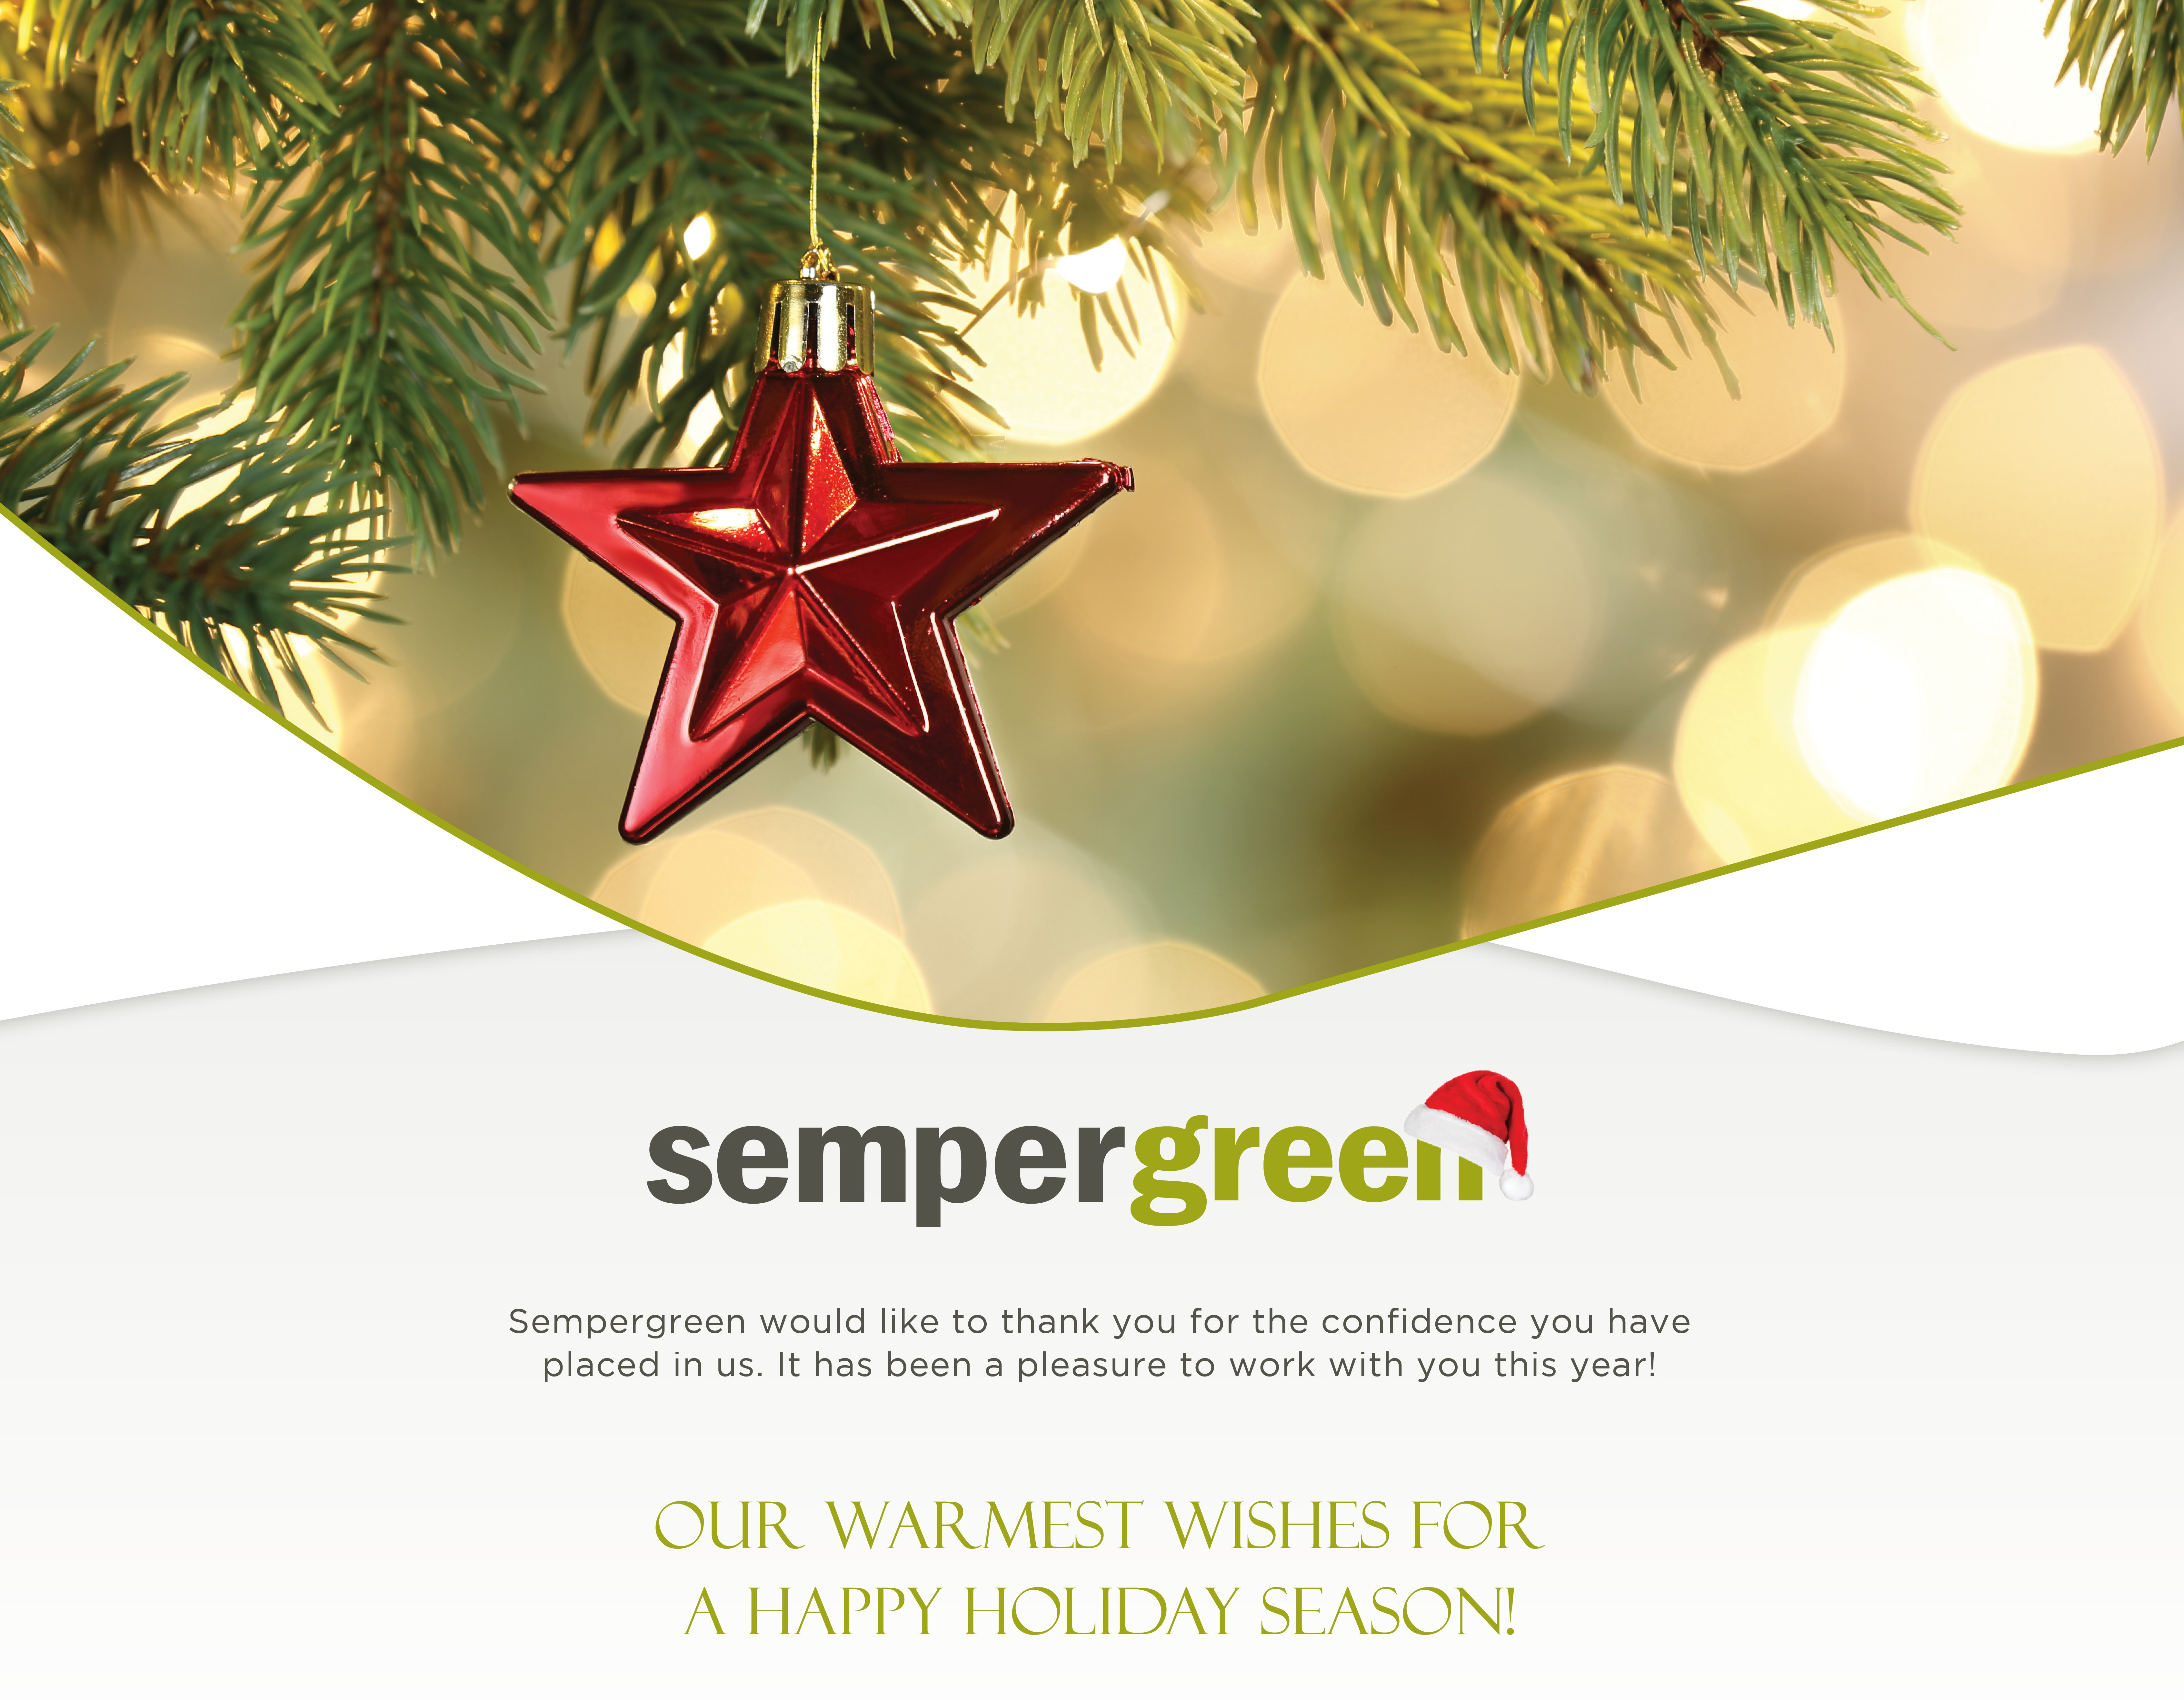 Happy Holidays from Sempergreen!